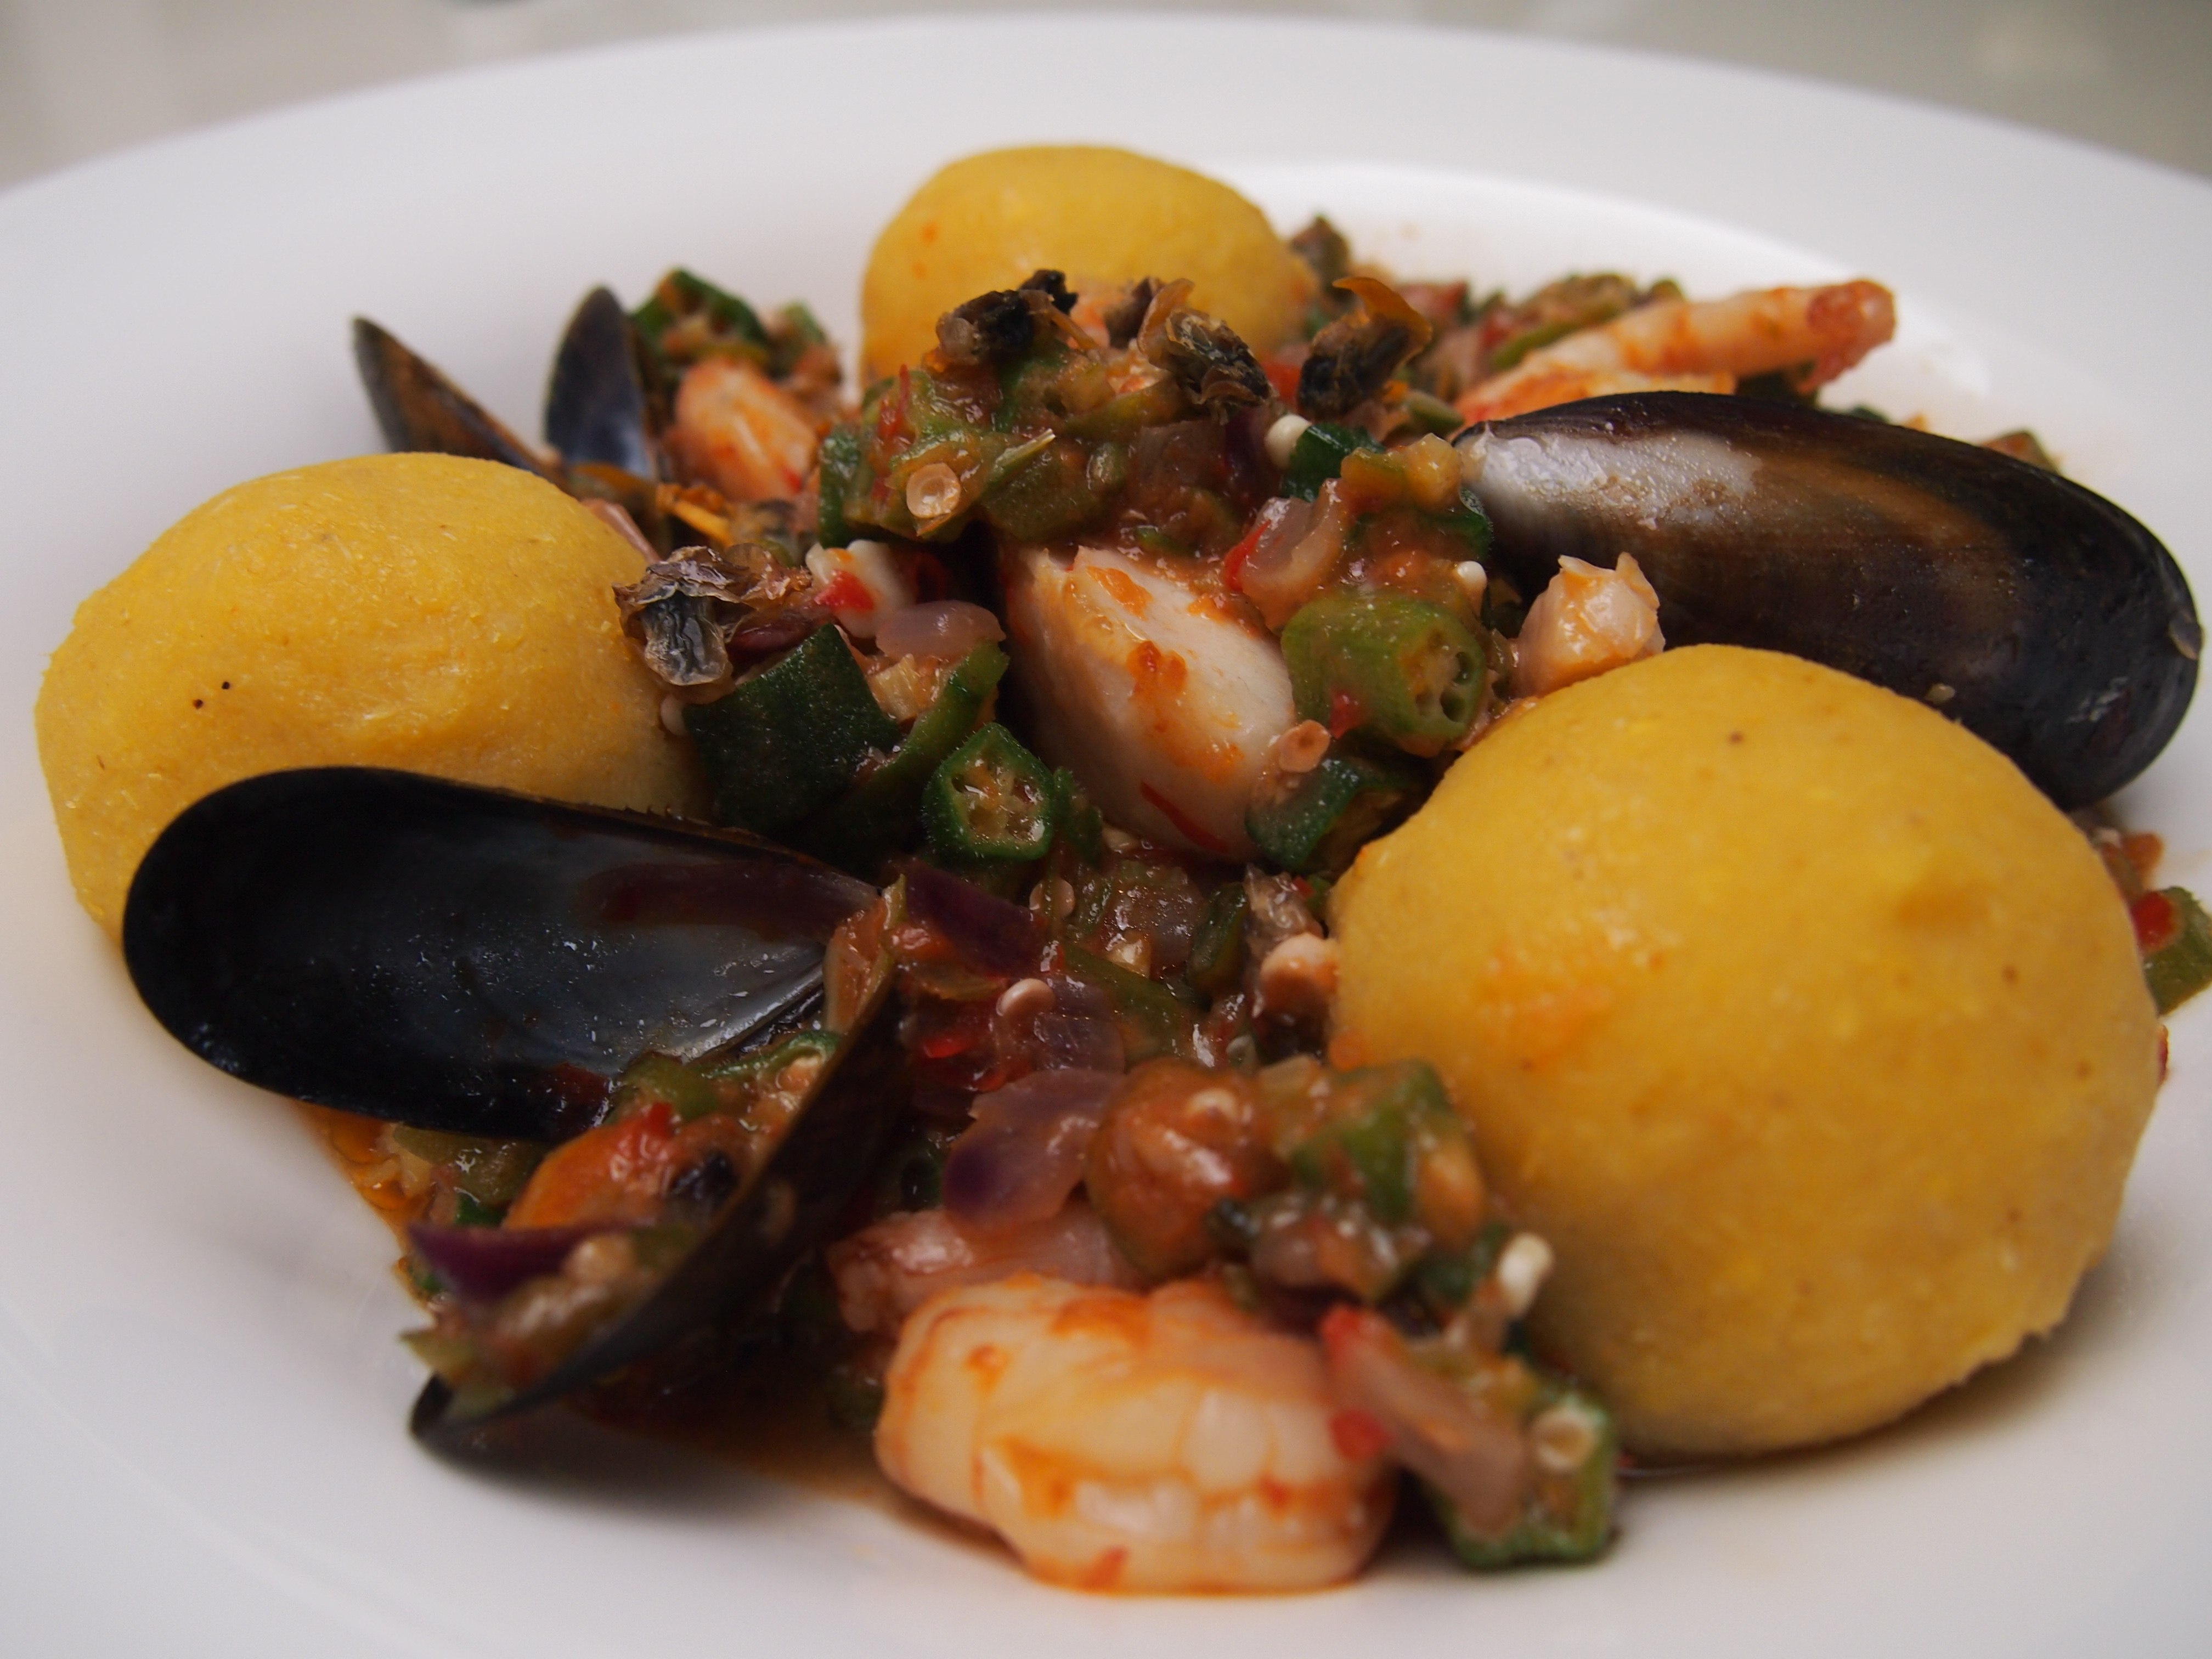 Seafood, okro and gari, food fit for a king.